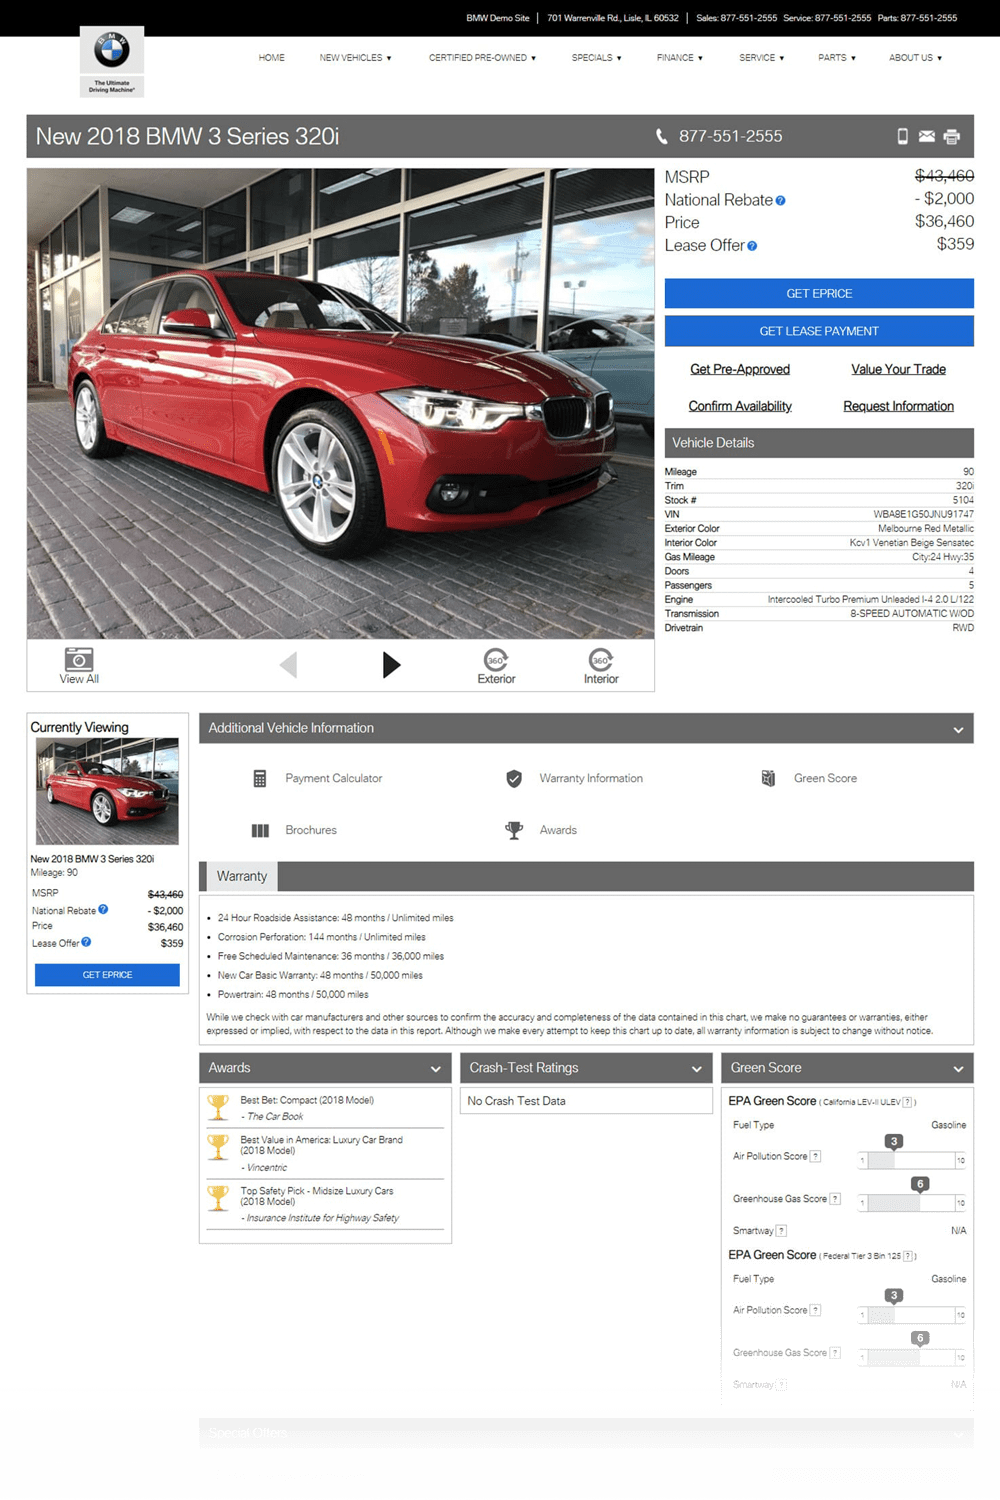 BMW VDP preview image